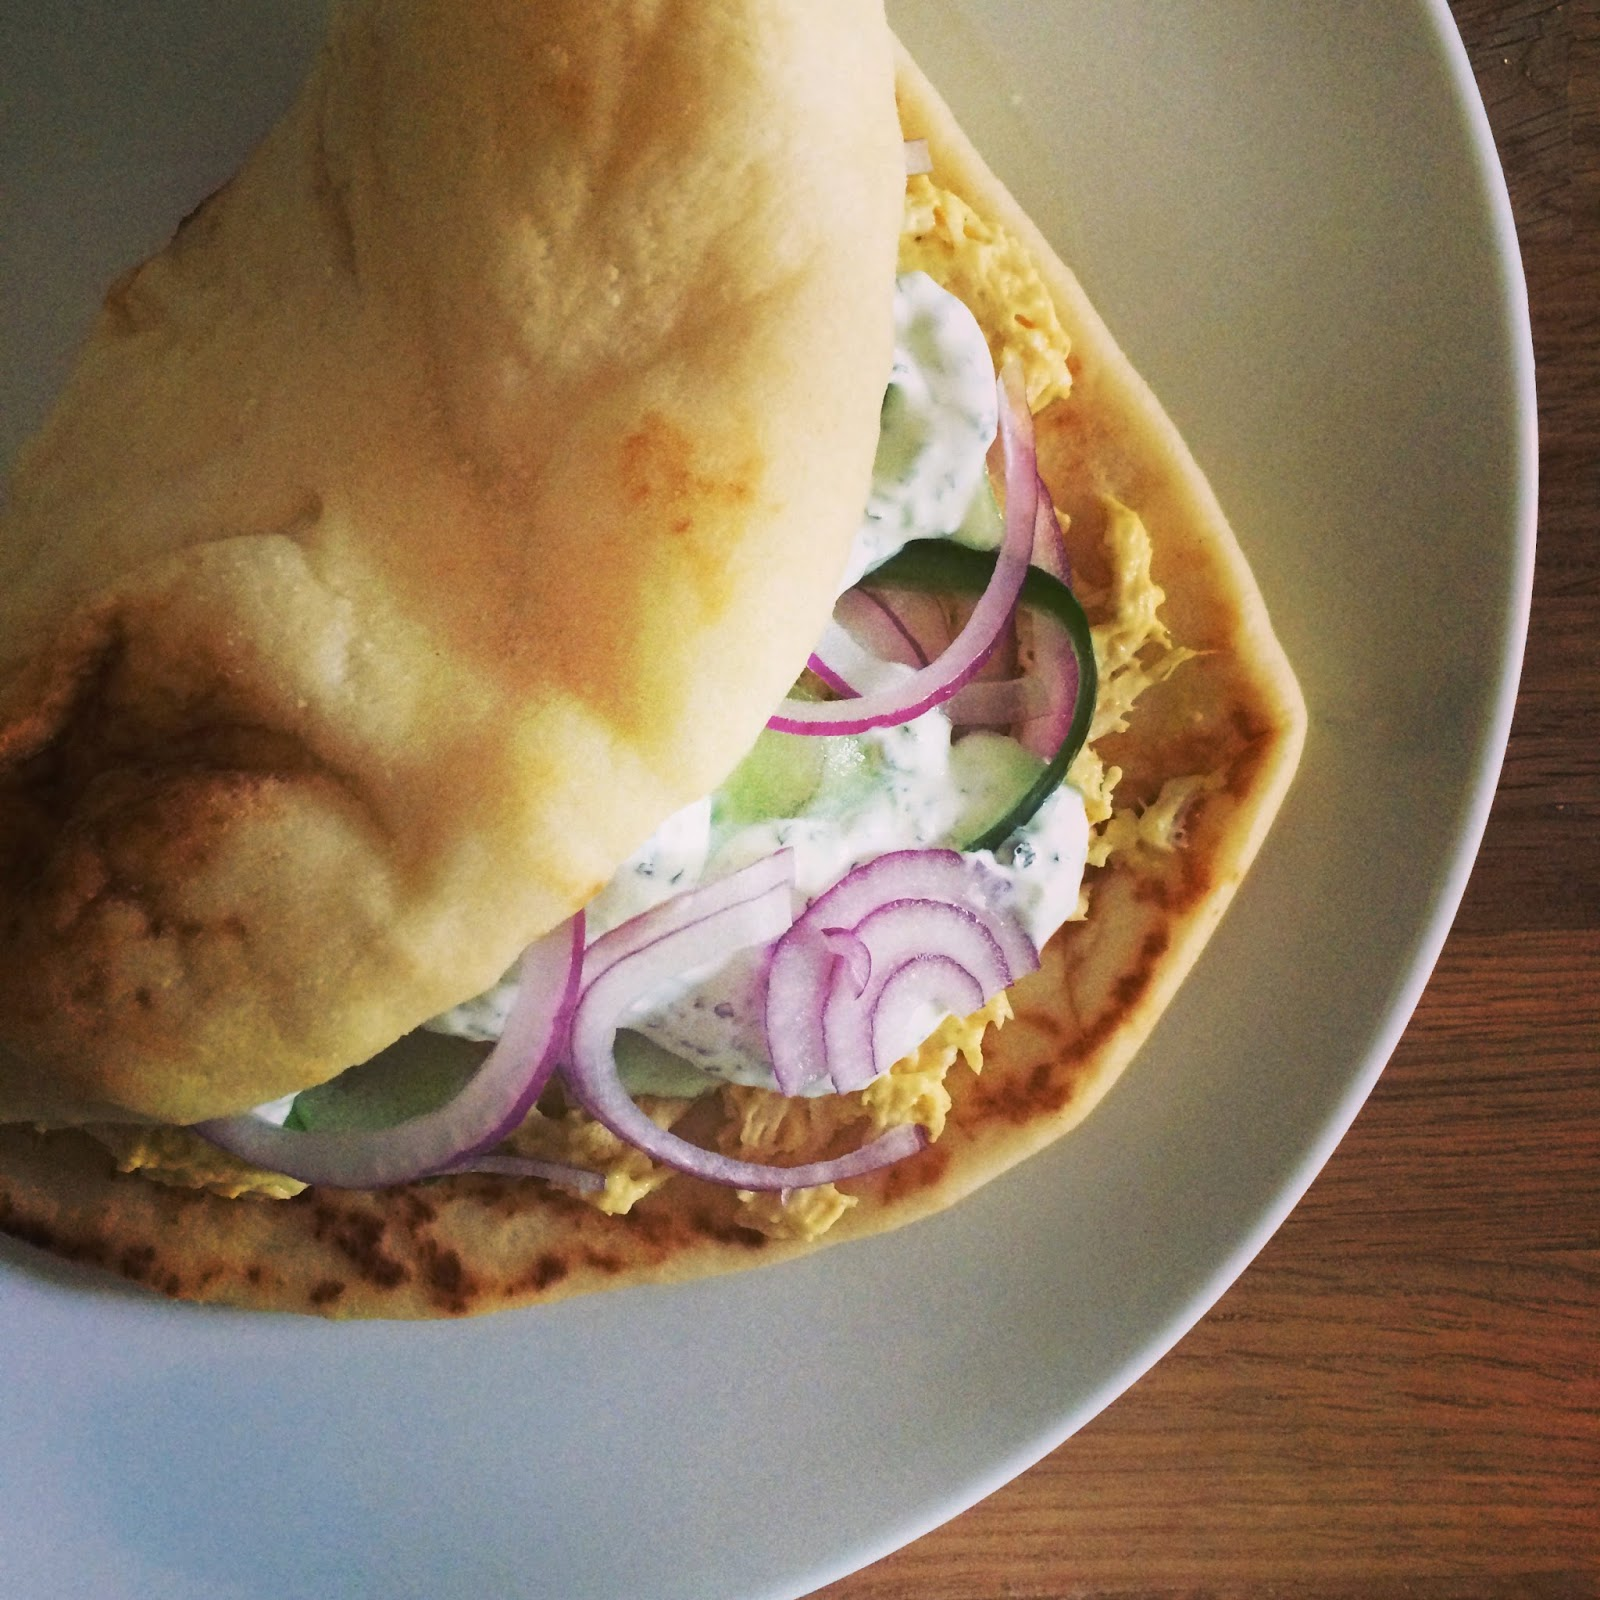 Holly likes to cook: Coronation Chicken Naan Sandwich